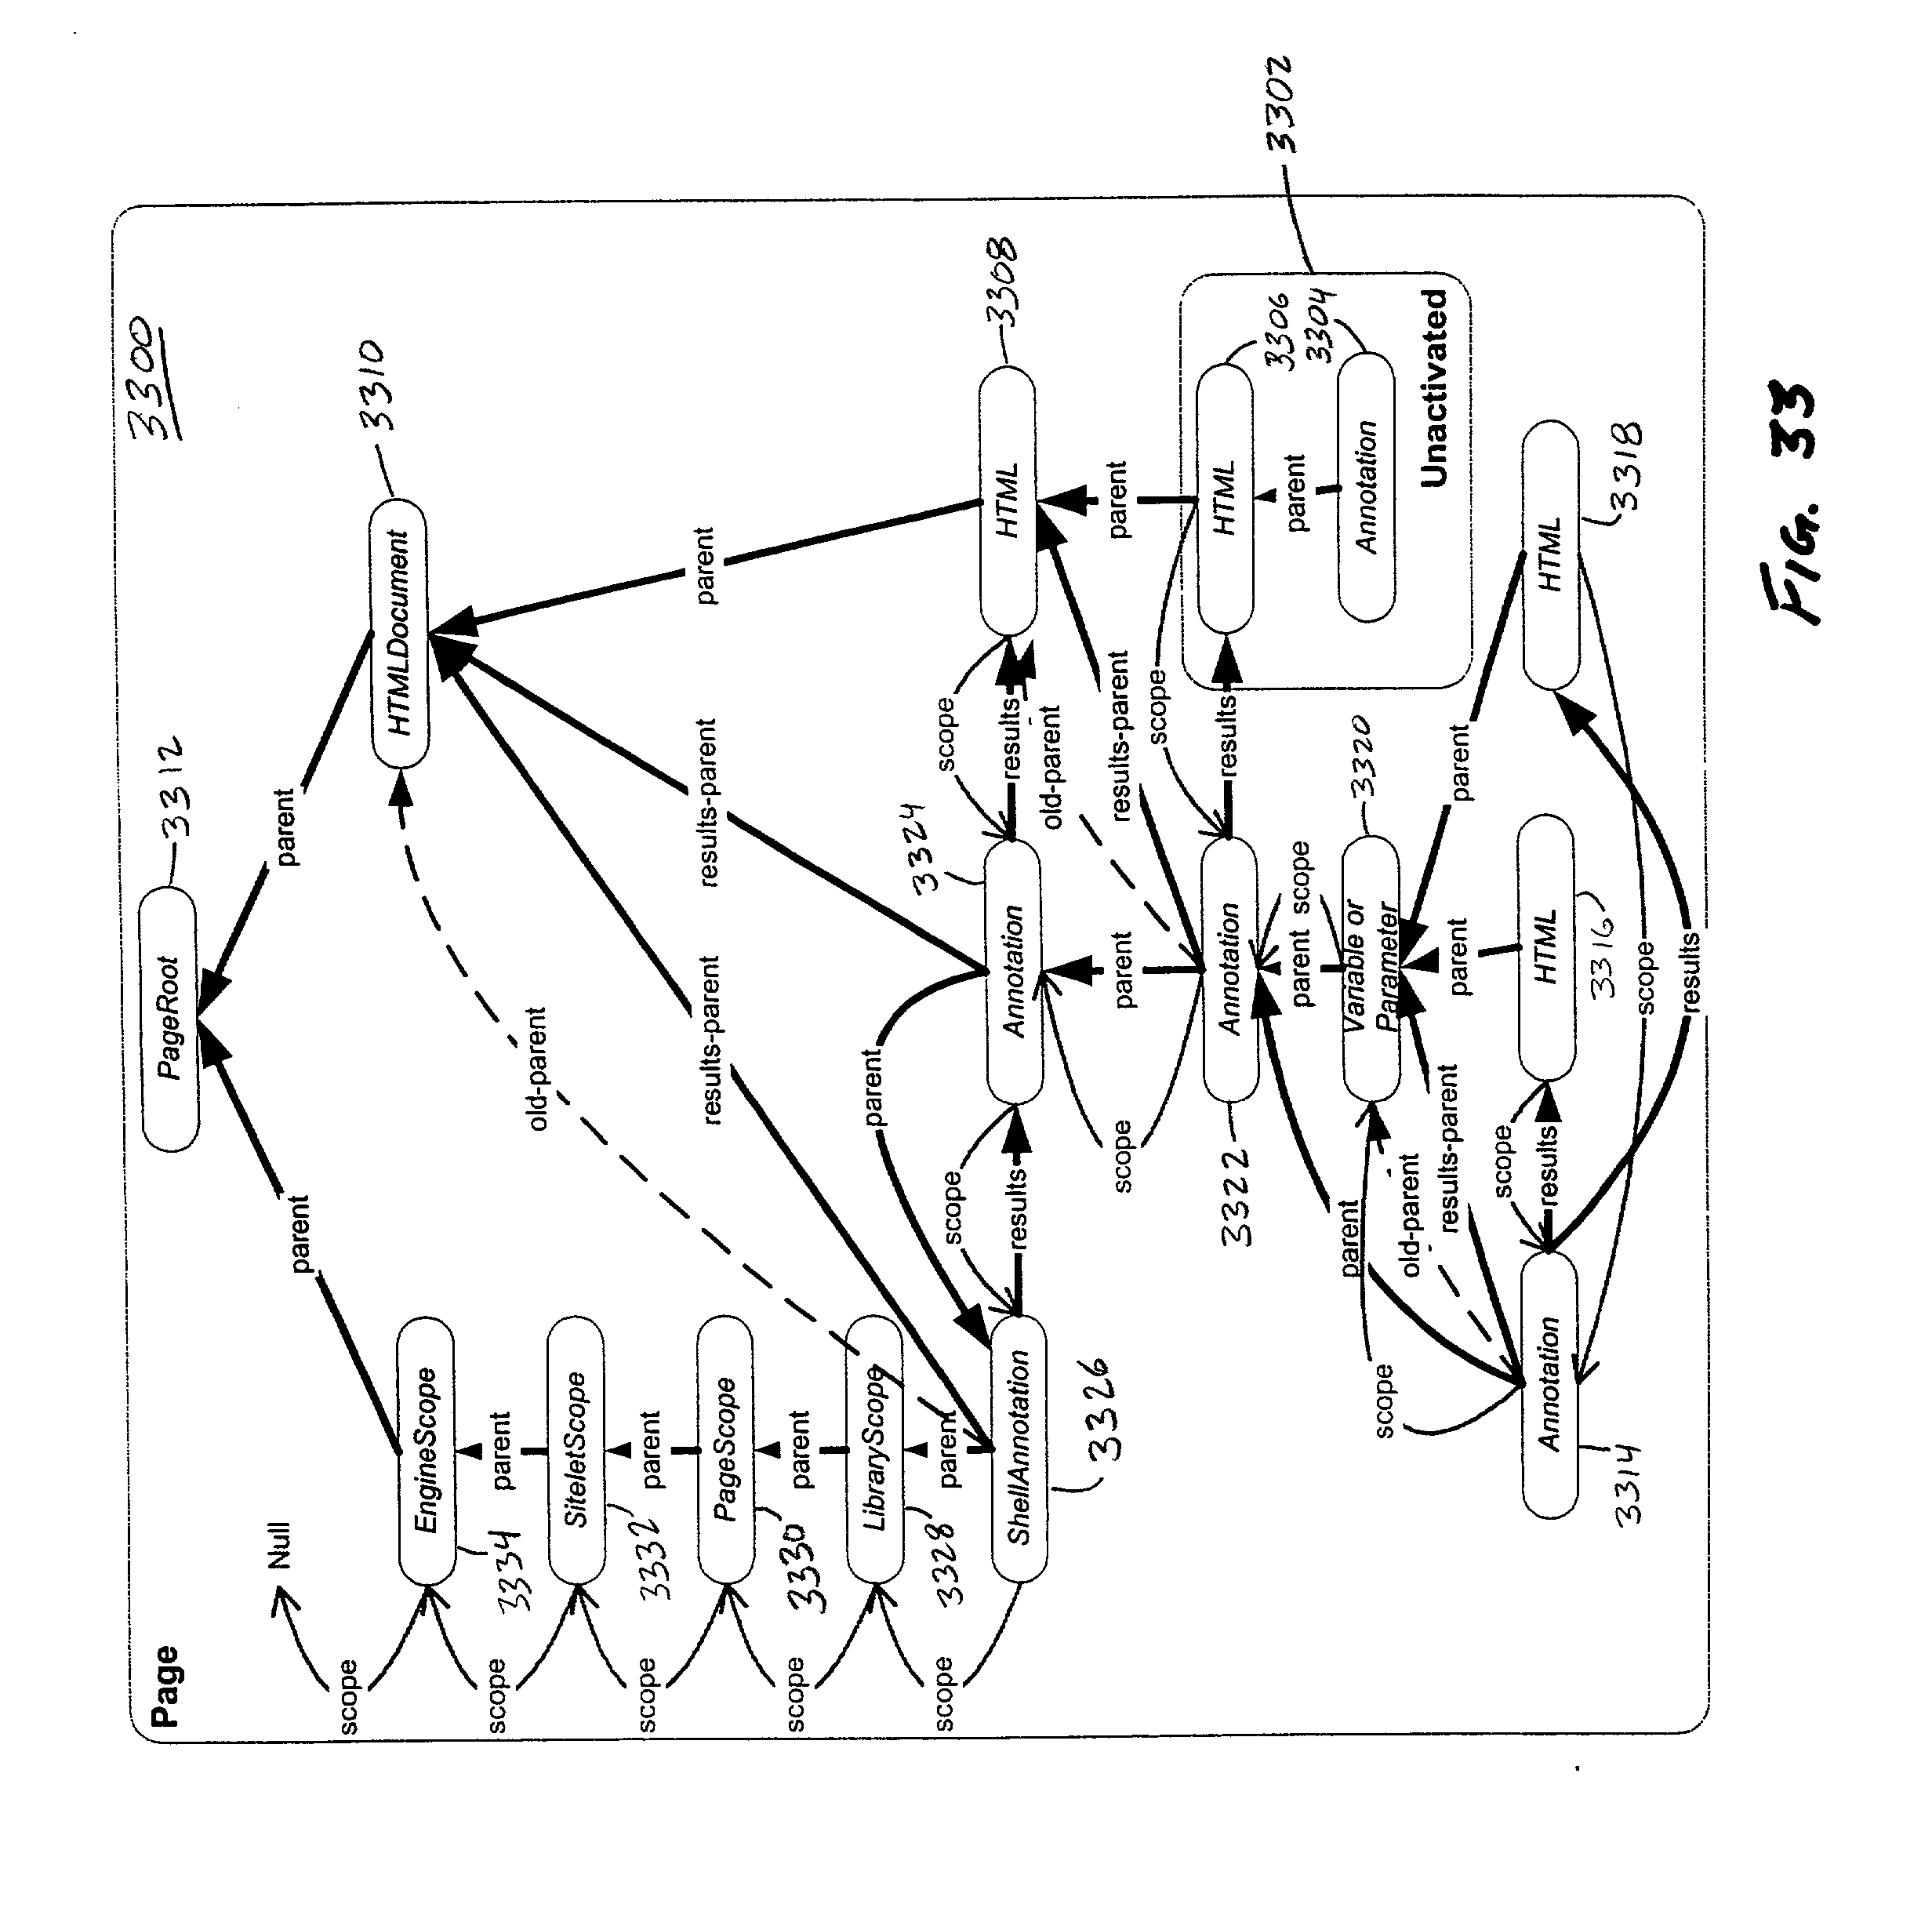 Cd player wire diagram besides polaris trail boss wire harness delete in addition wiring diagram for